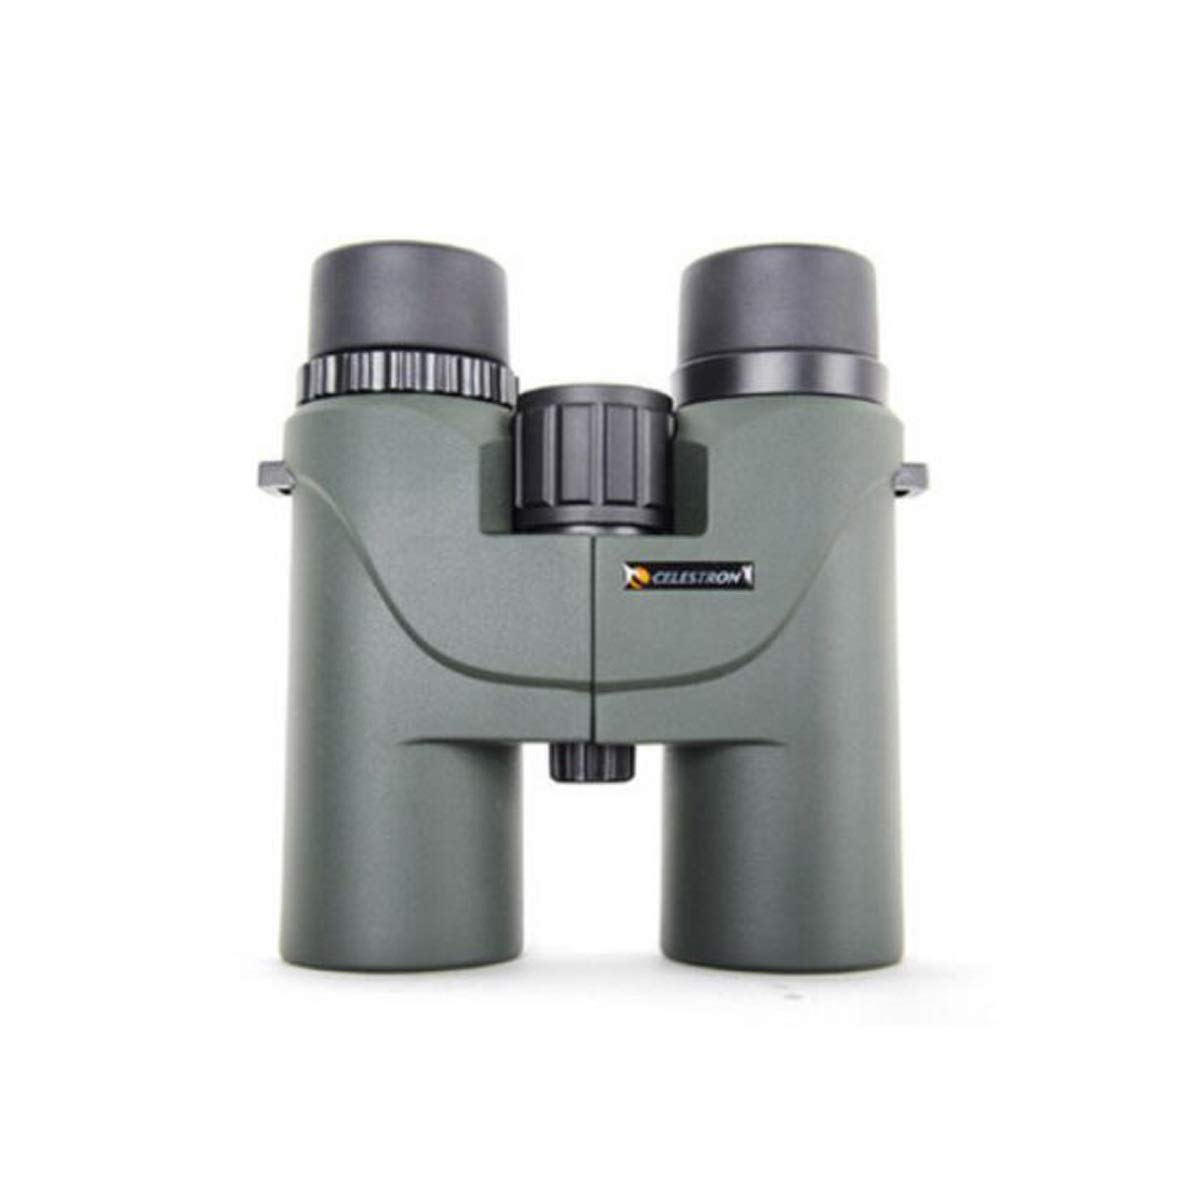 Kaiyitong Telescope, 8X42 High-Definition Low-Light Night Vision Nitrogen-Filled Waterproof HD Telescope, Outdoor Hunting Adult Non-Infrared Binoculars (Color : Gray)